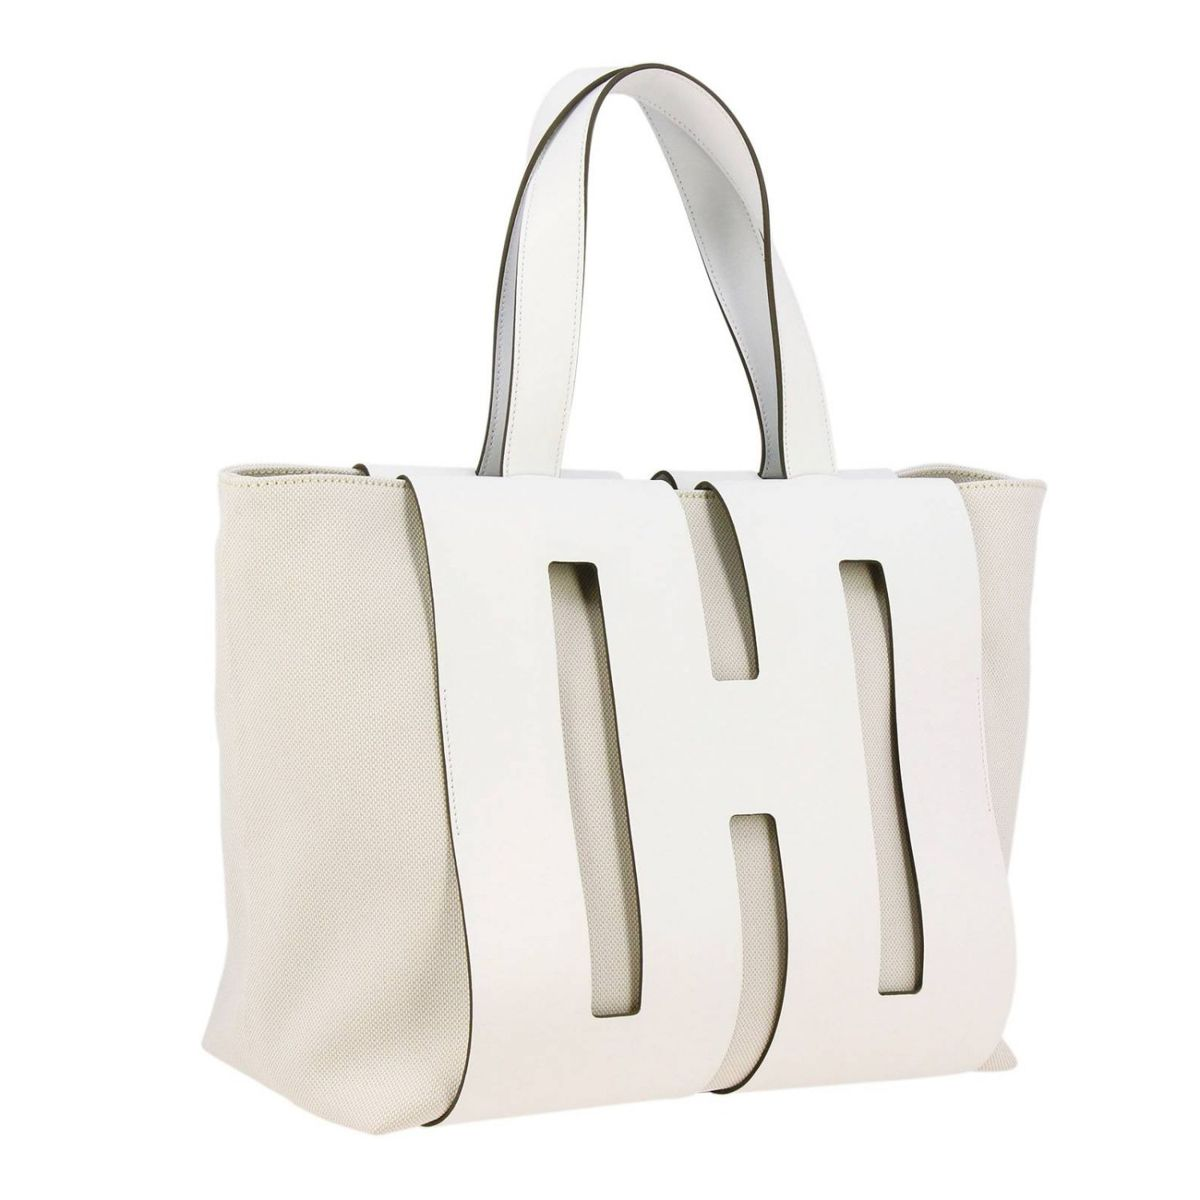 Medium shopping bag White Hogan